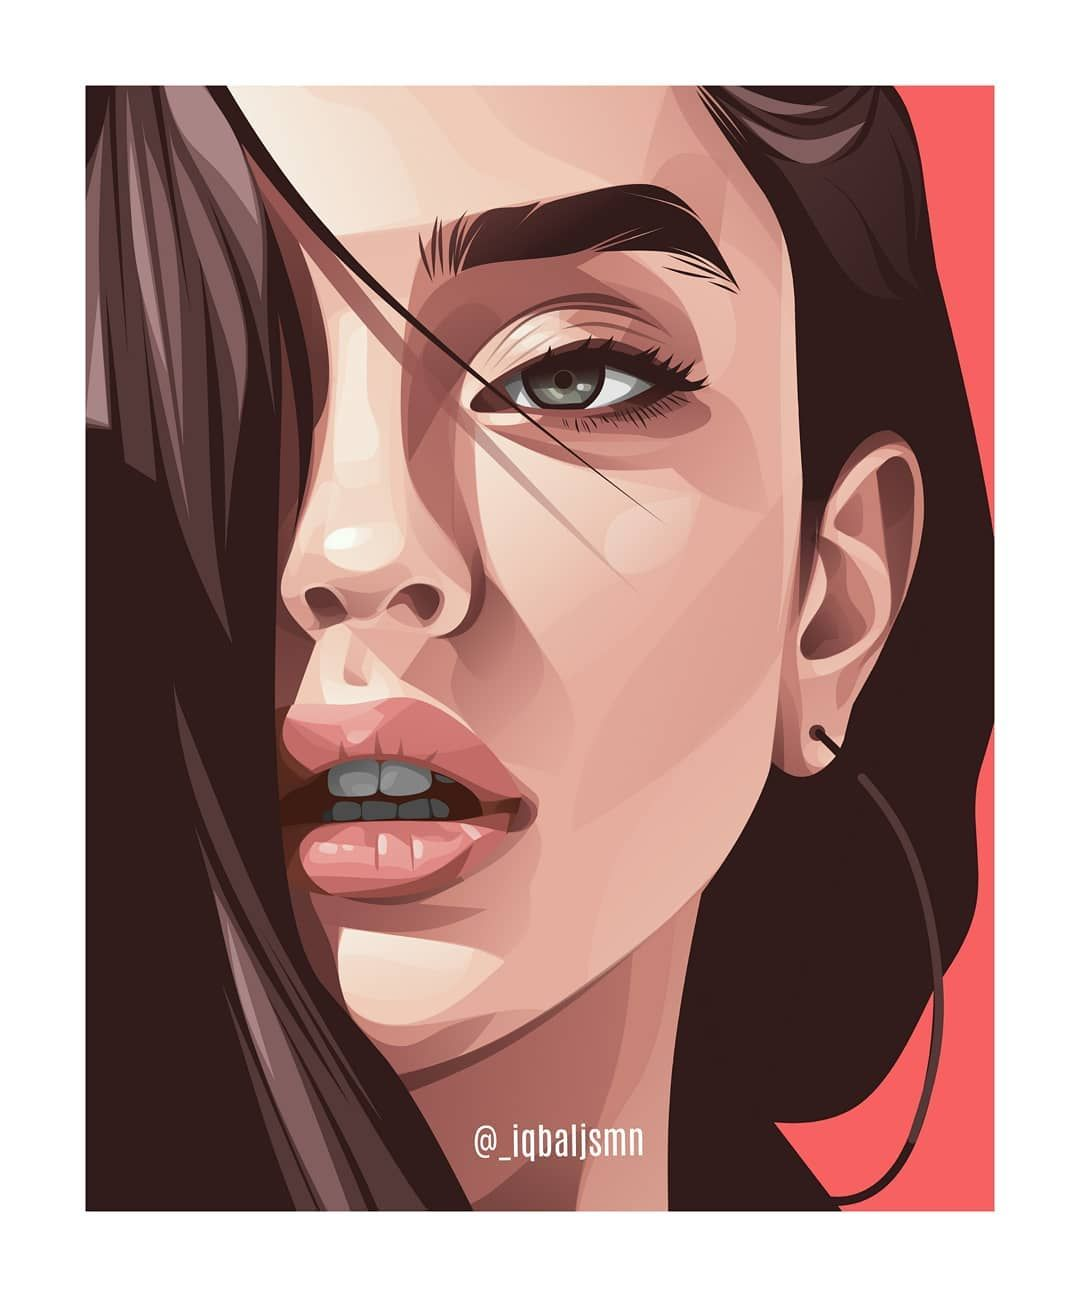 ardroidz : I will draw a detailed vector portrait illustration for $10 on fiverr.com